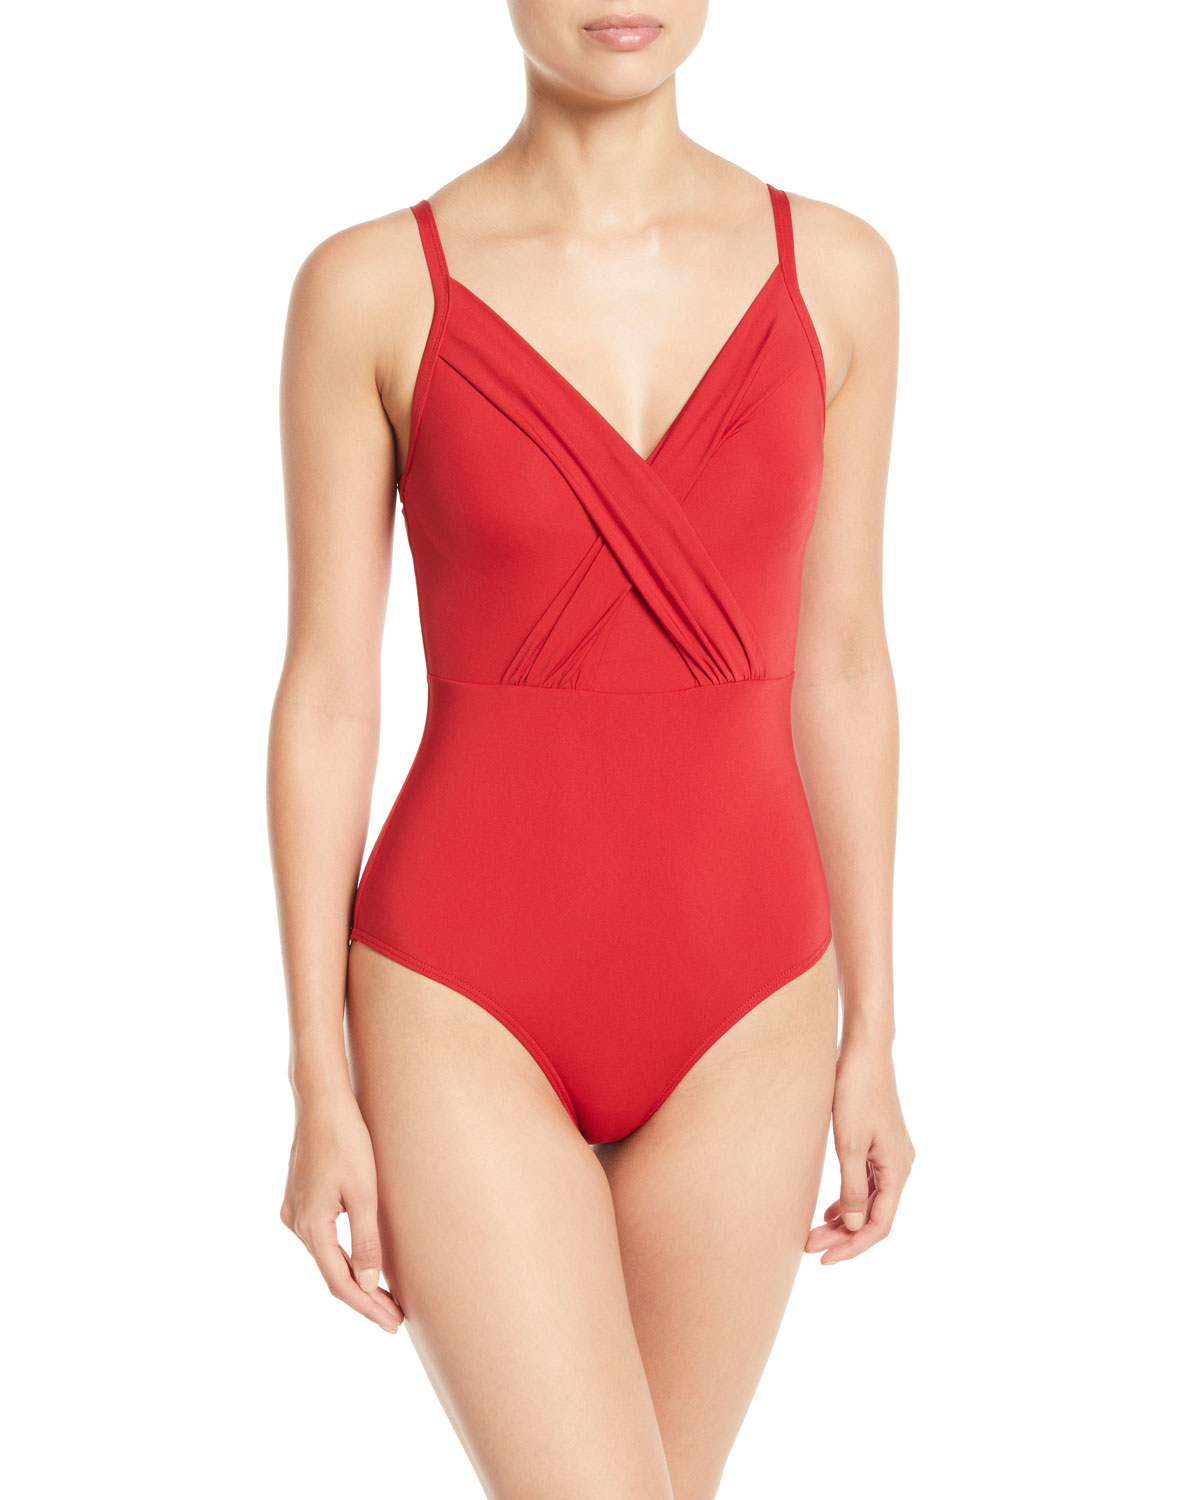 e6284f4bc4a77 JETS by Jessika Allen Jetset Cross-Front One-Piece Swimsuit (DD E ...